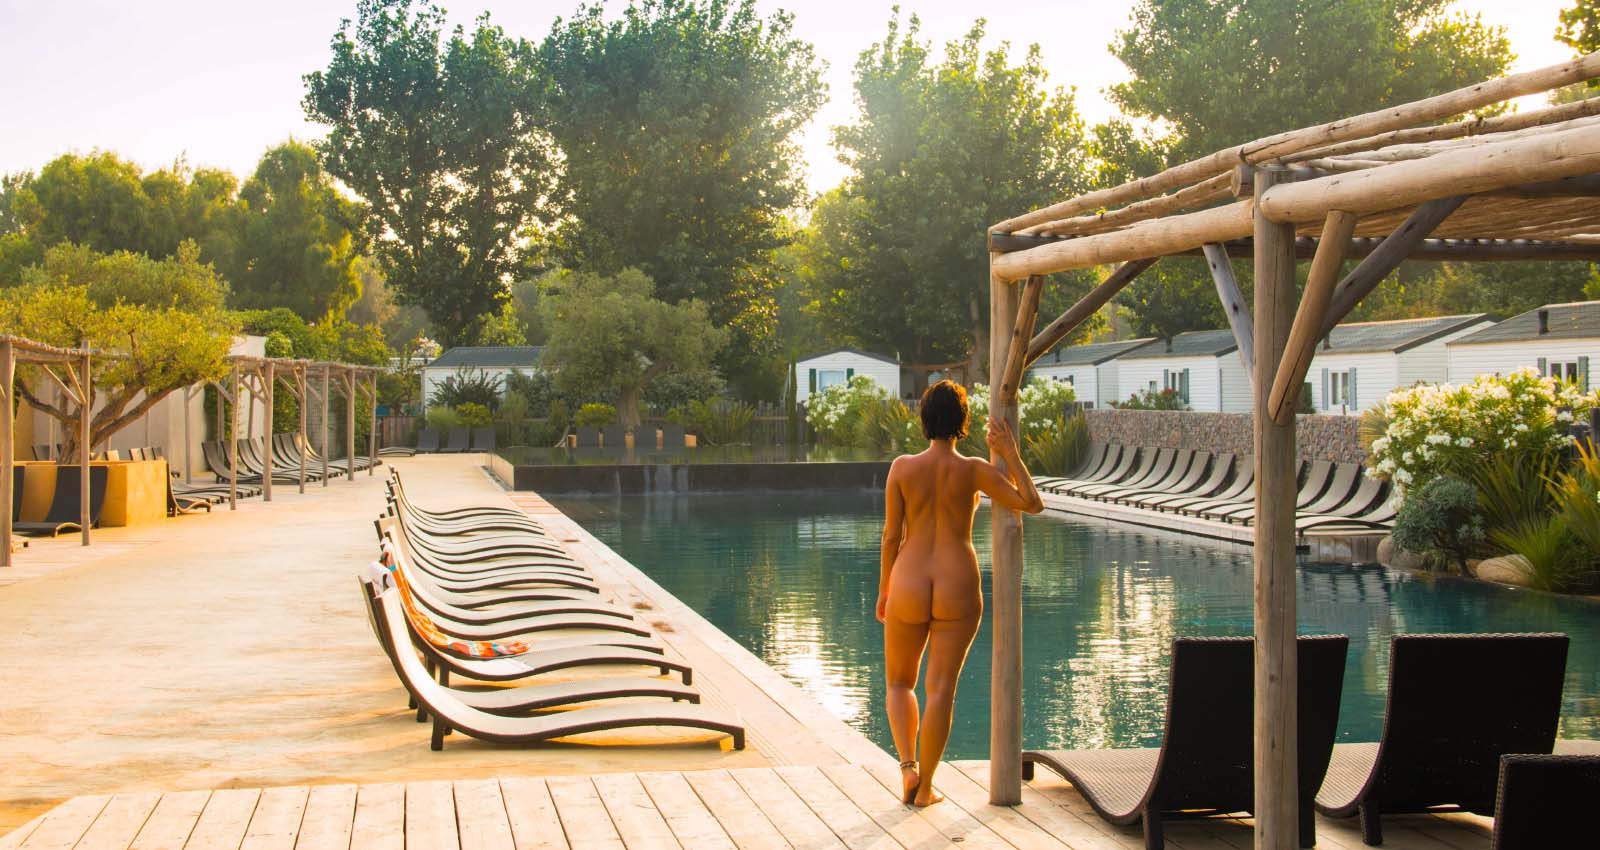 European Countries with a Nude Spa Culture